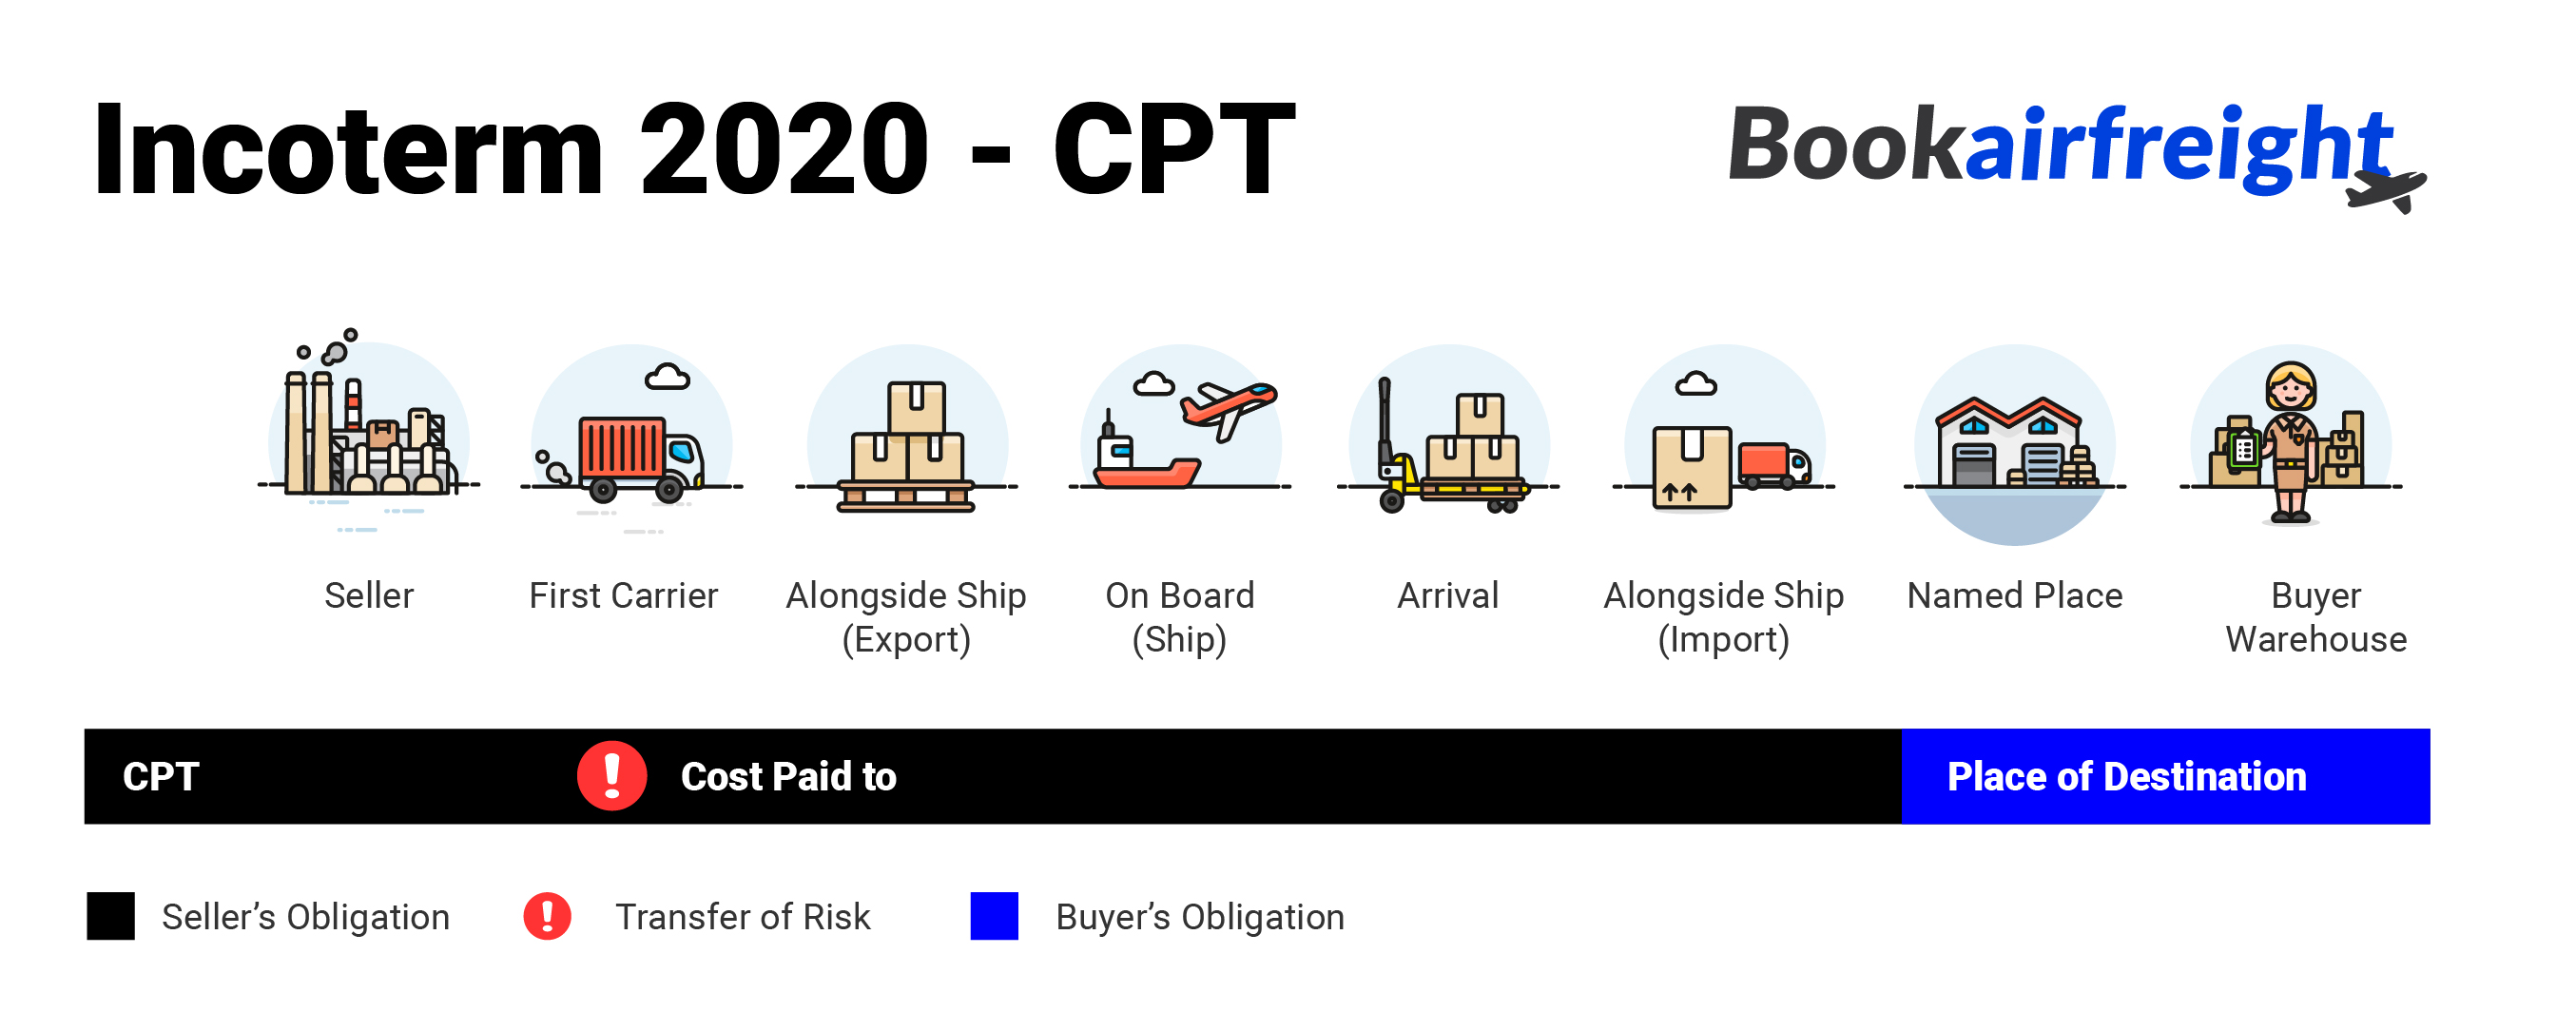 Bookairfreight - what is CPT?